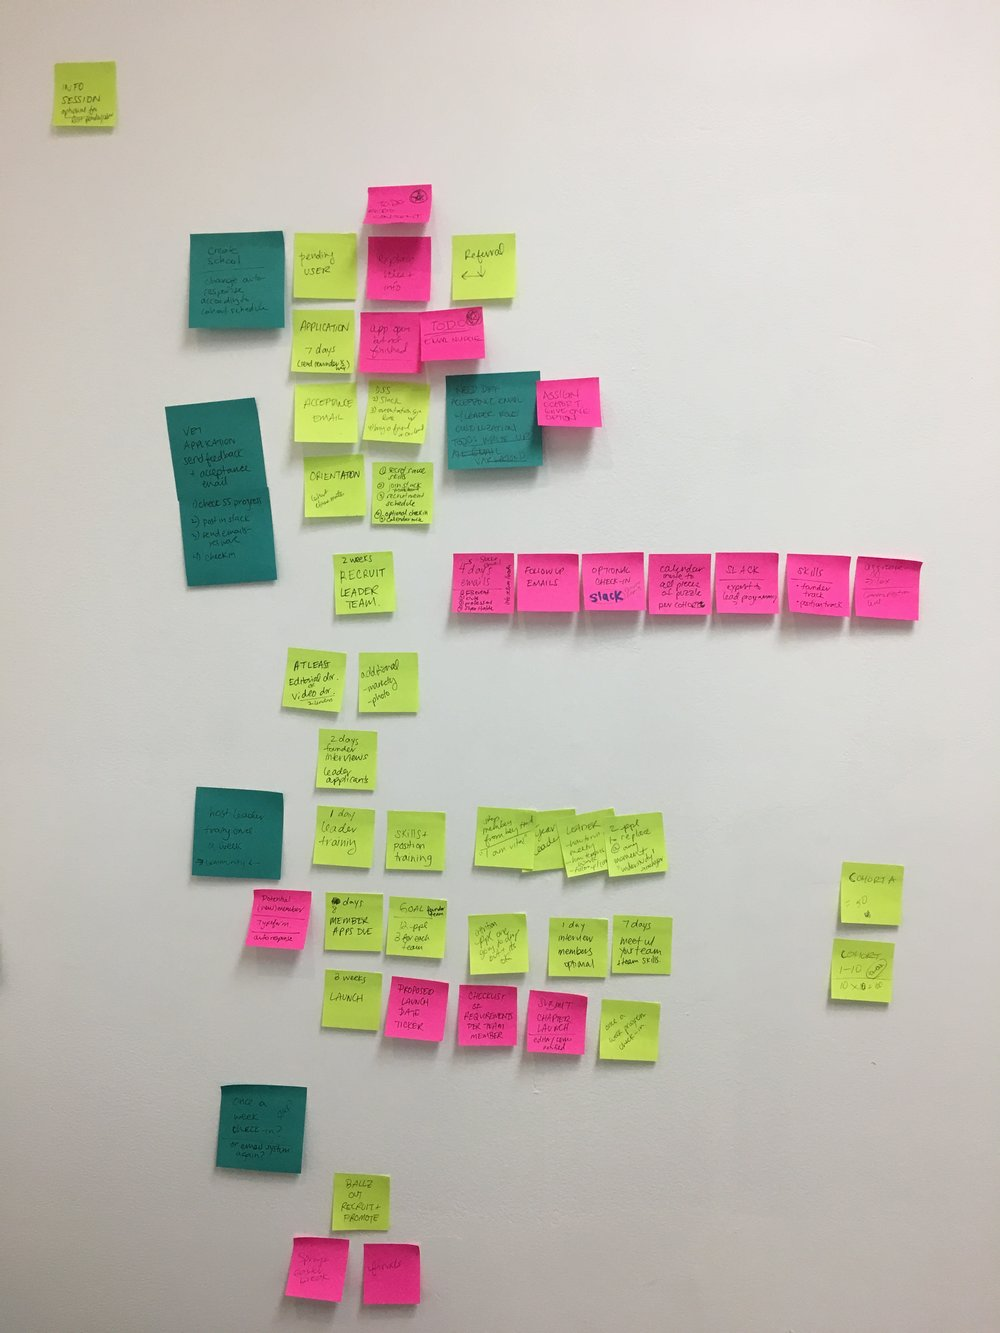 Mapping out potential program structure and user journeys.